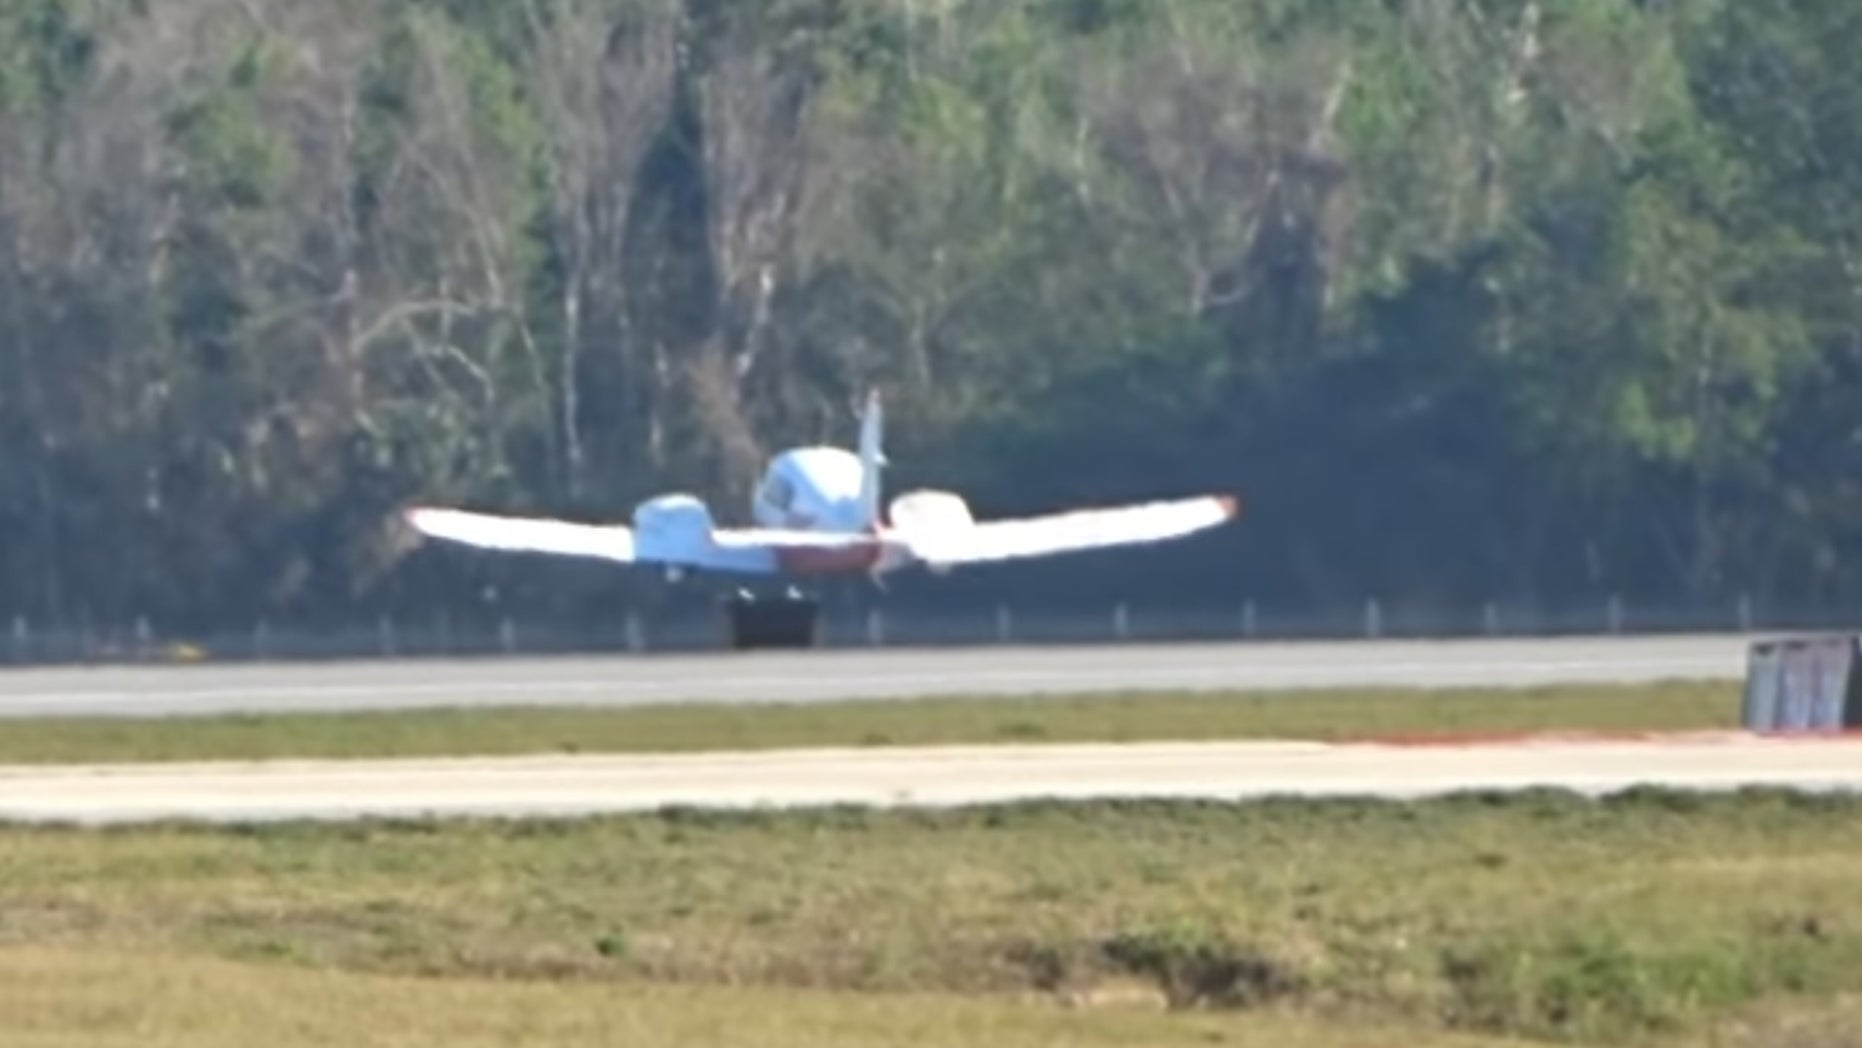 The careful landing in Daytona Beach.